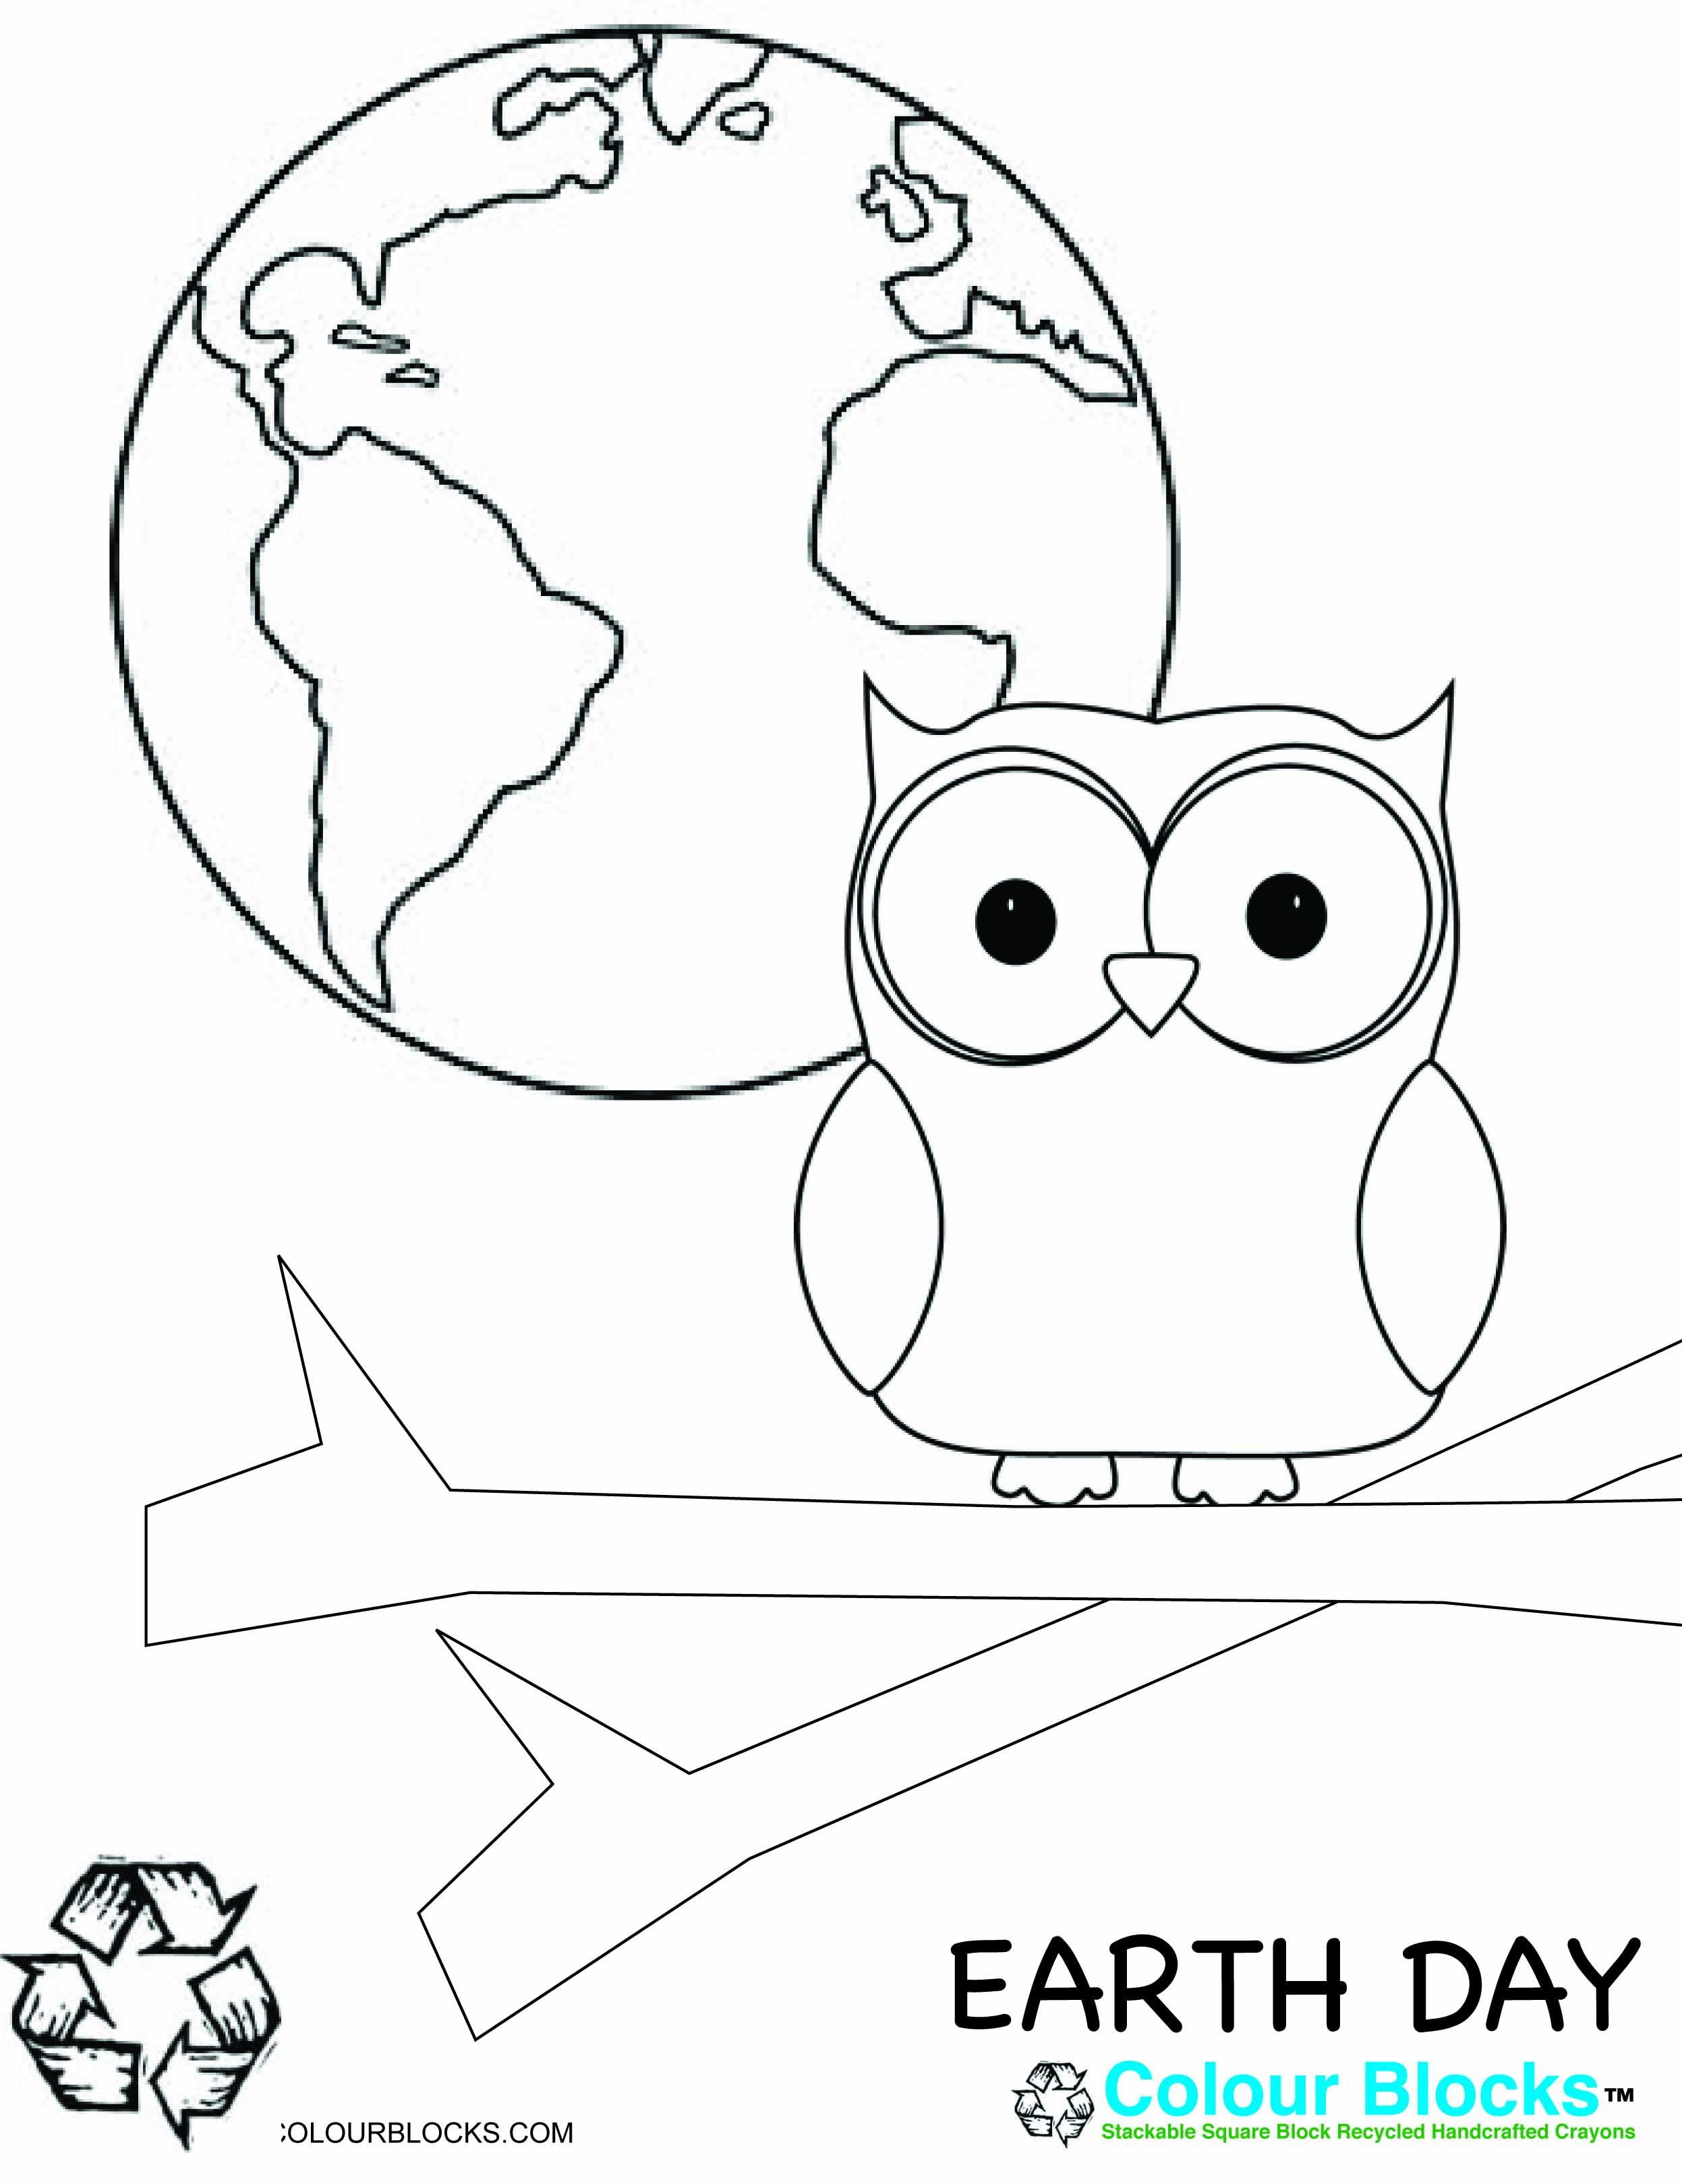 Earth Day Coloring Pages Pdf : Earth day coloring pages for kids print color craft